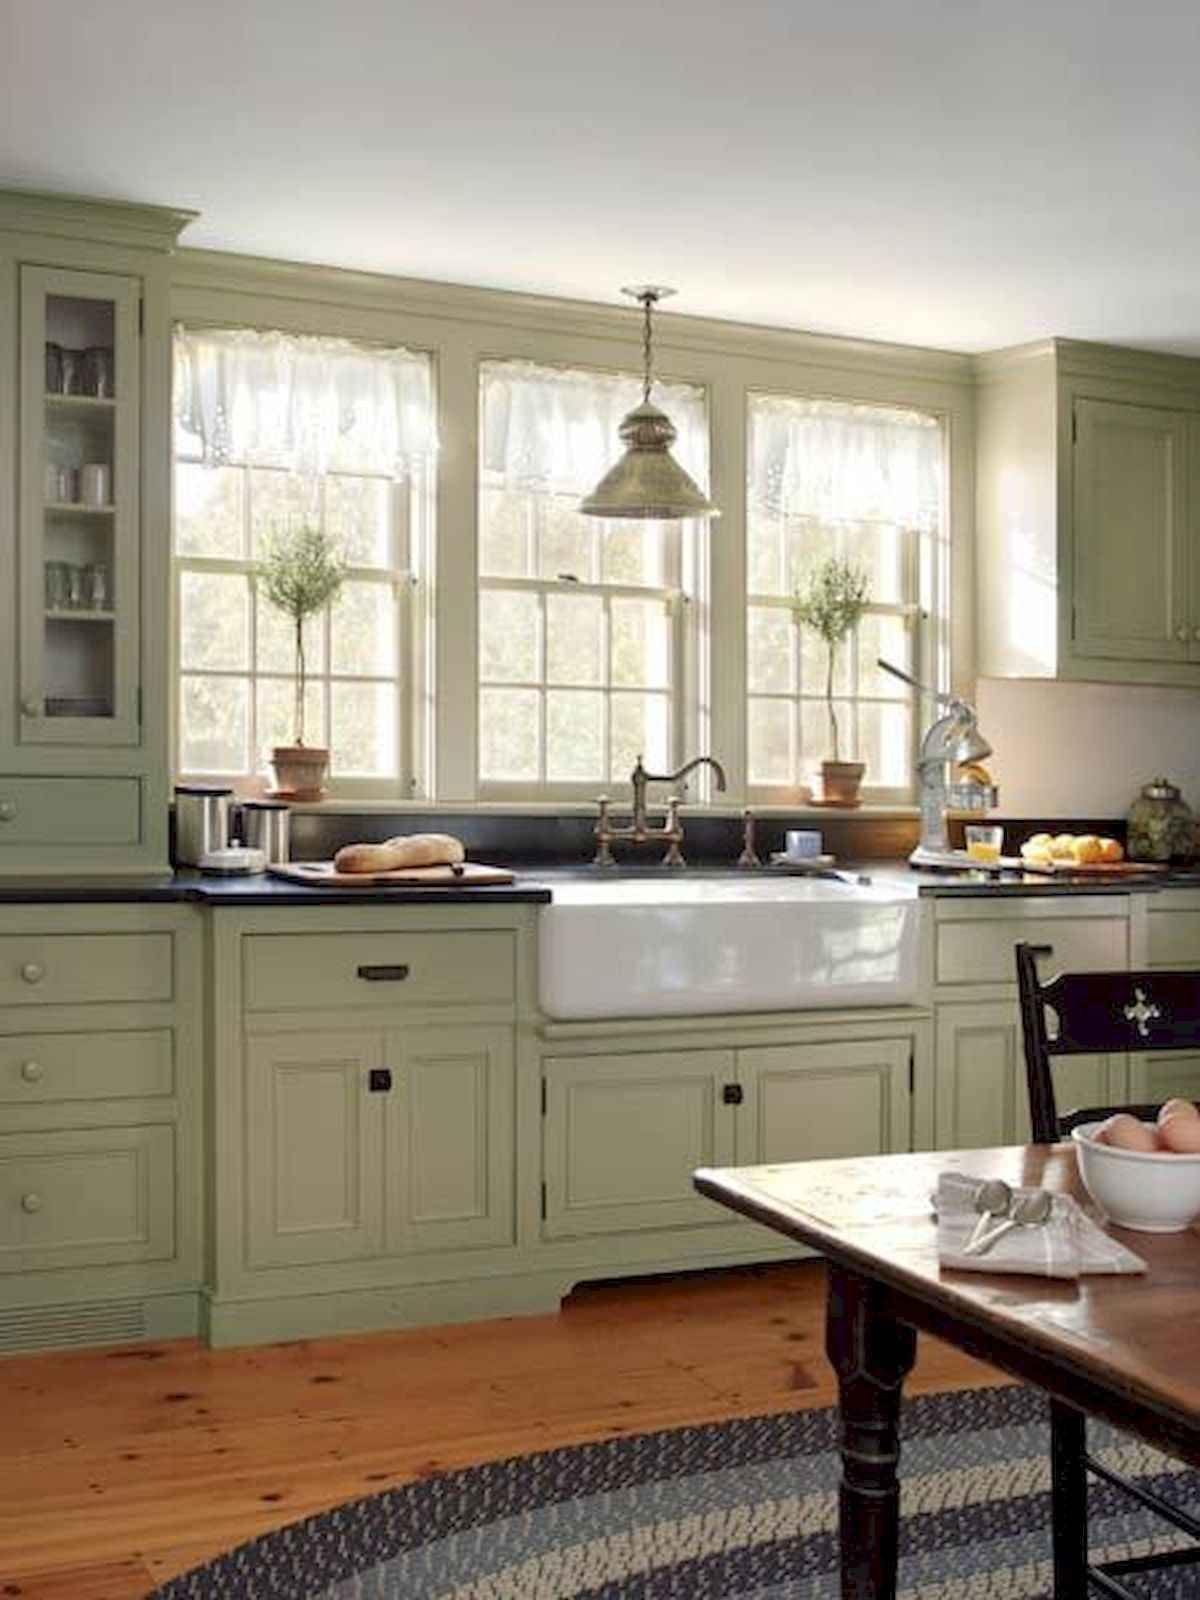 17 best green kitchen cabinets design ideas 14 farmhouse style kitchen cabinets kitchen on kitchen cabinets farmhouse style id=83793